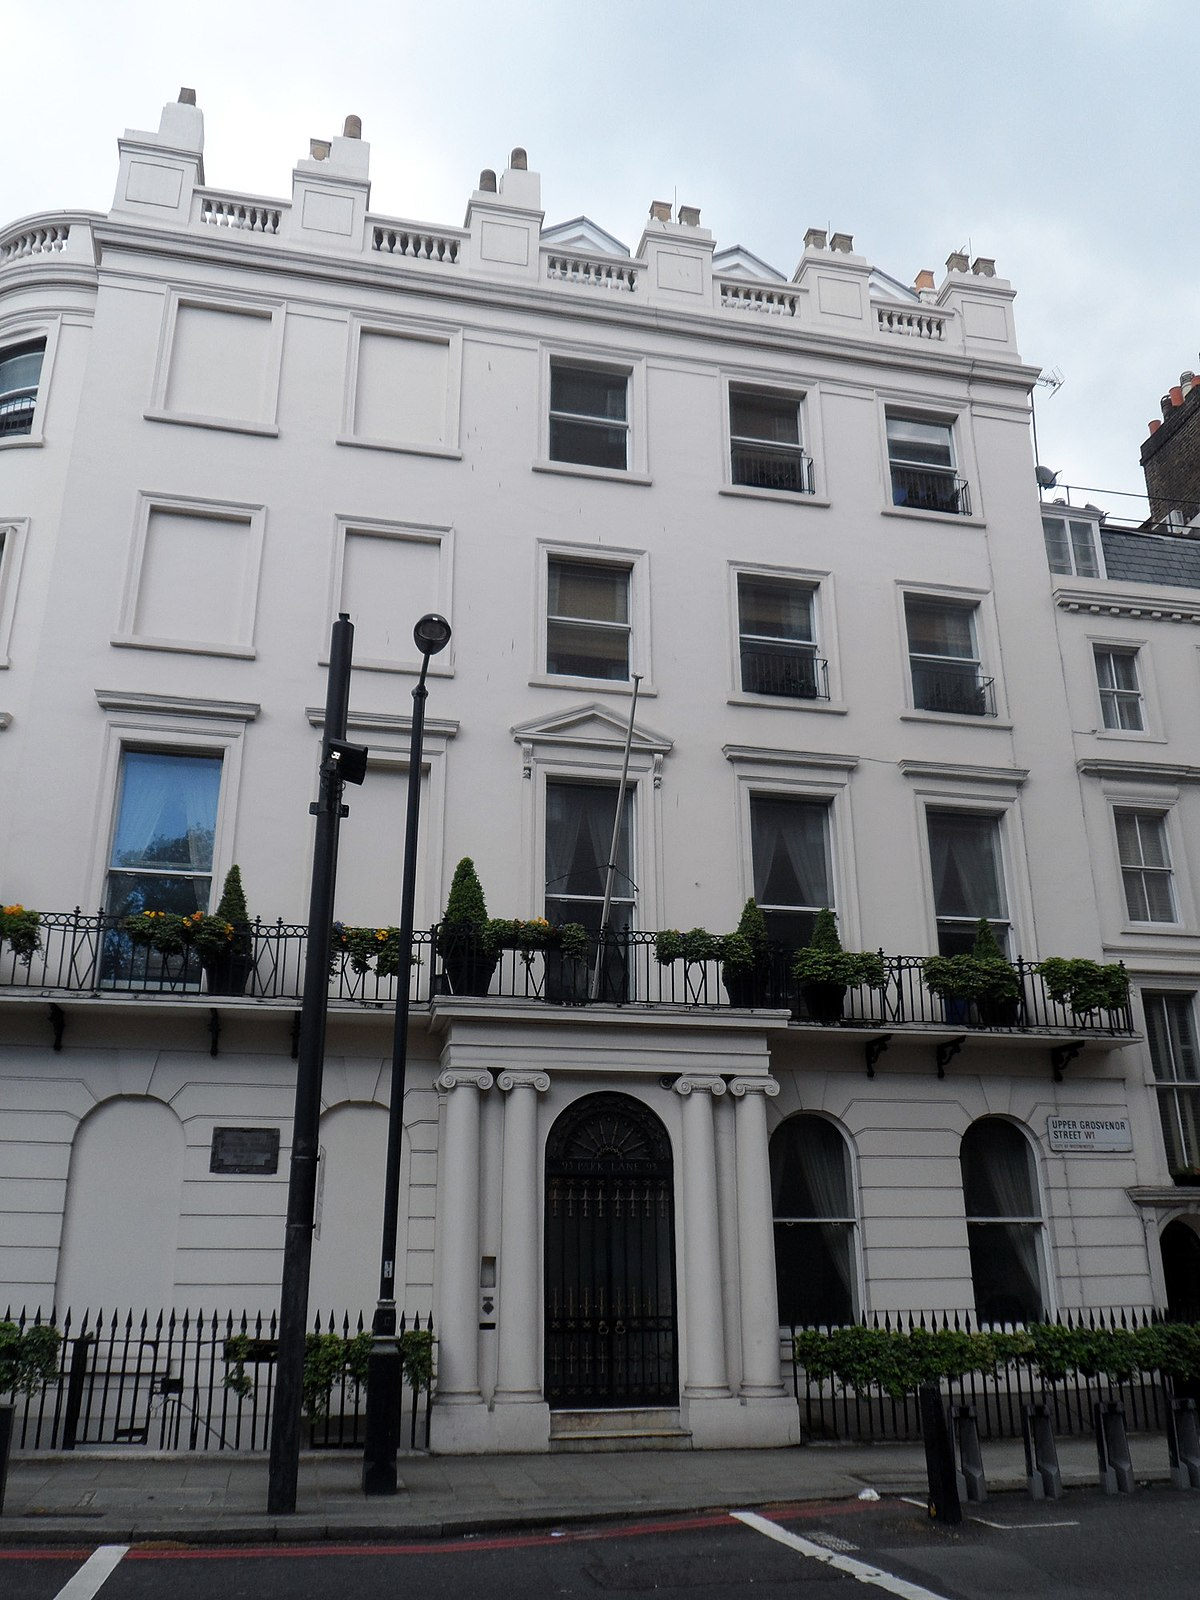 93 park lane wikipedia for Quartiere mayfair londra